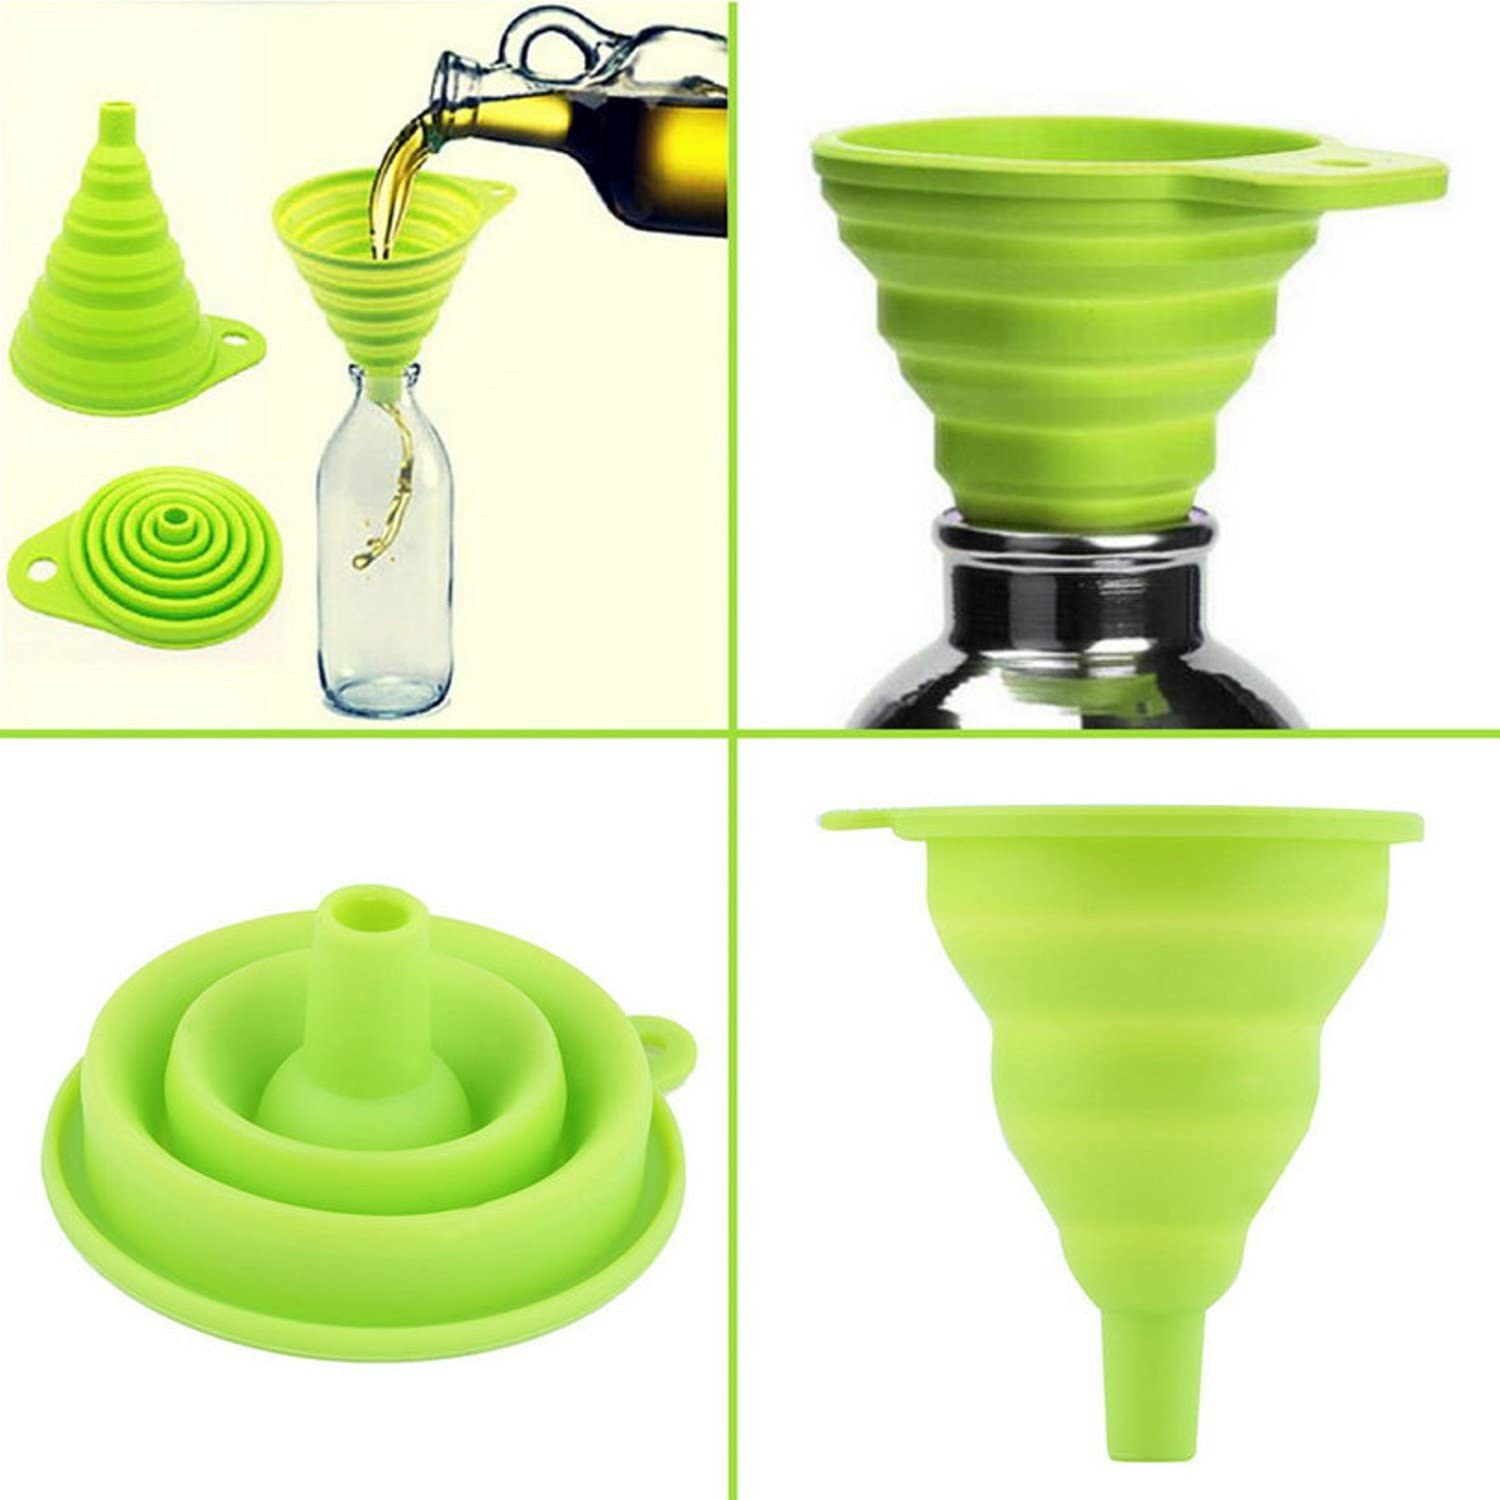 S#NEW MINI SILICONE GEL FOLDABLE COLLAPSIBLE STYLE FUNNEL HOPPER KITCHEN TOOL #1